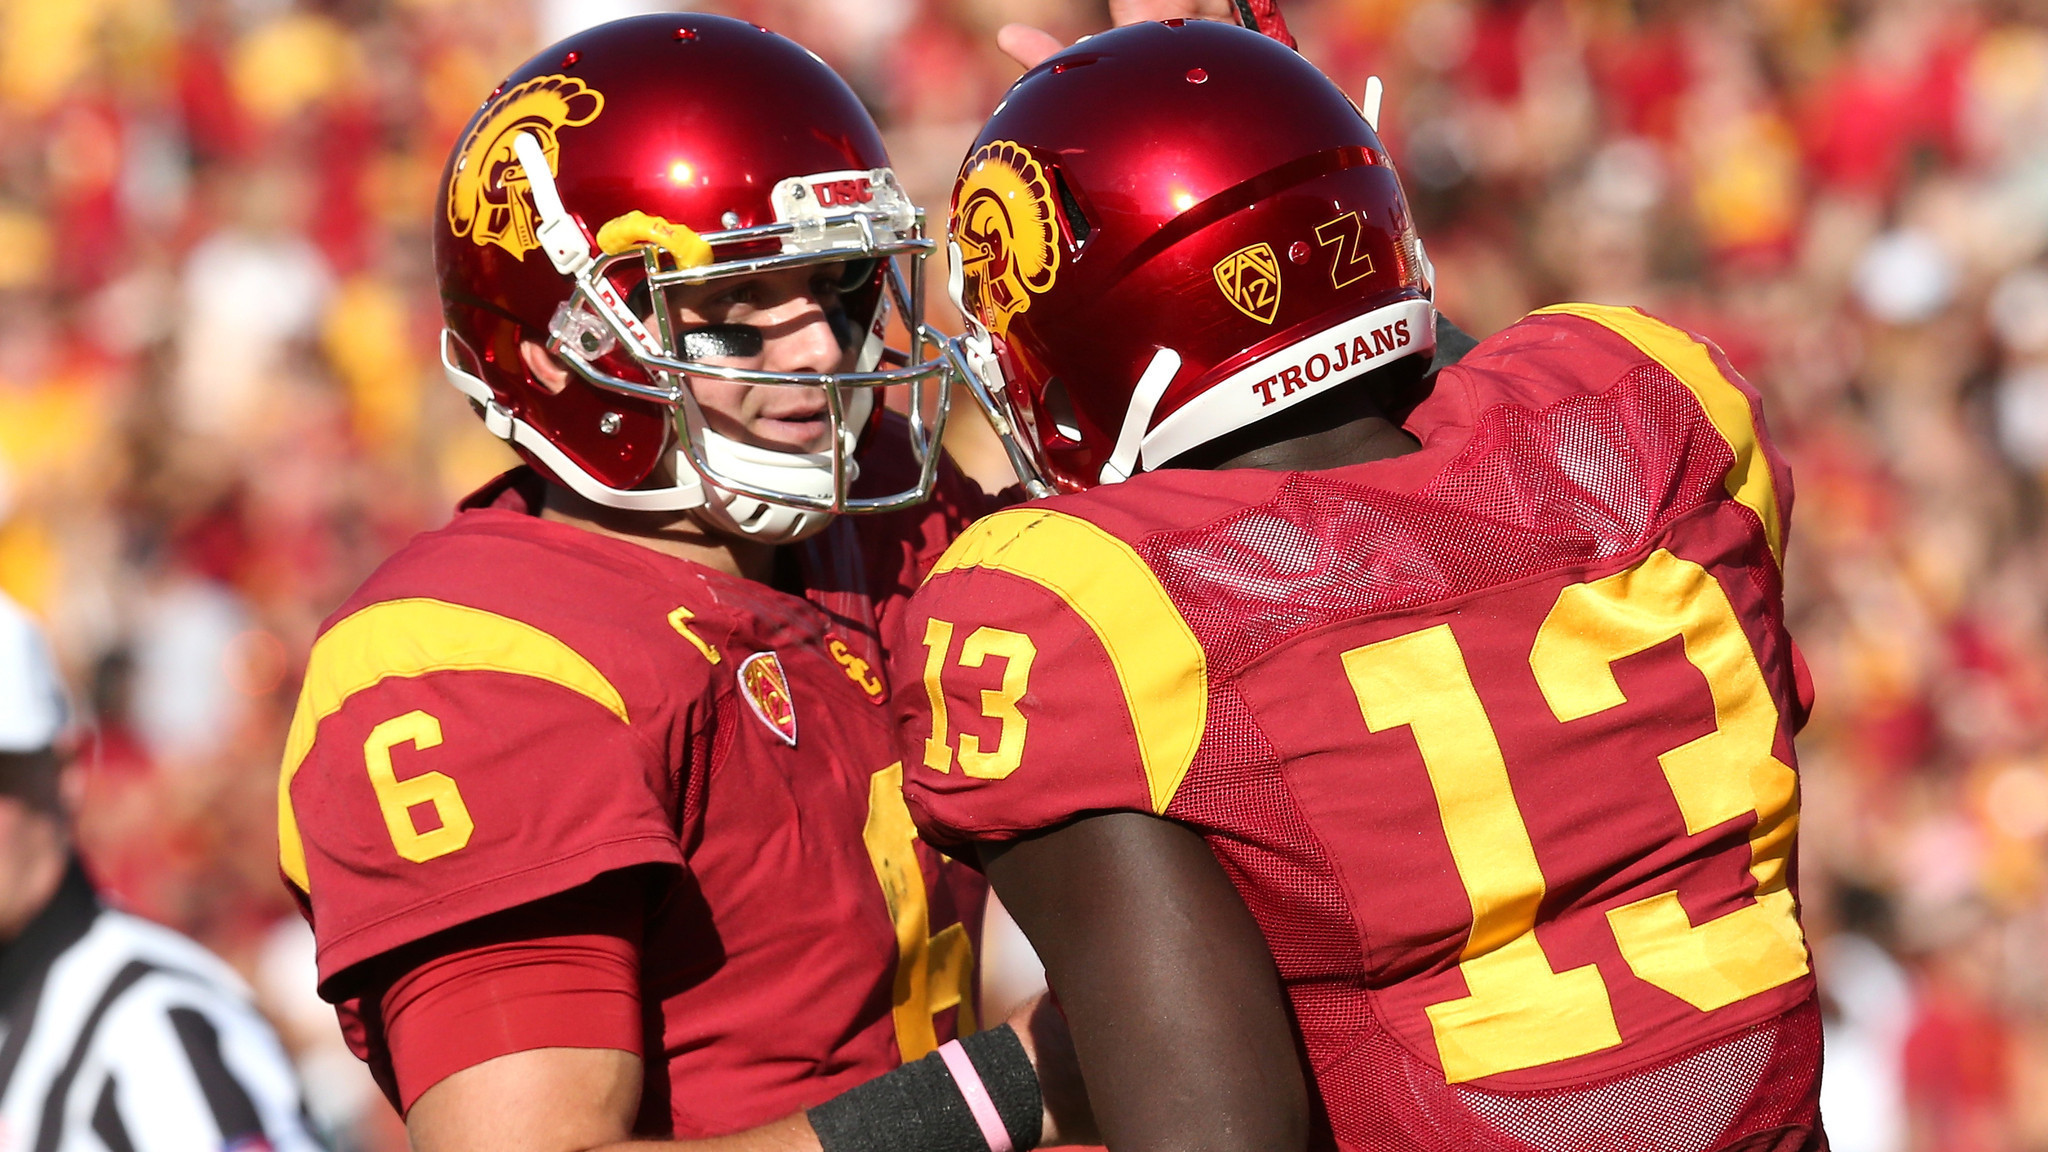 The 2007 USC Trojans football team variously Trojans or USC represented the University of Southern California during the 2007 NCAA Division I FBS football